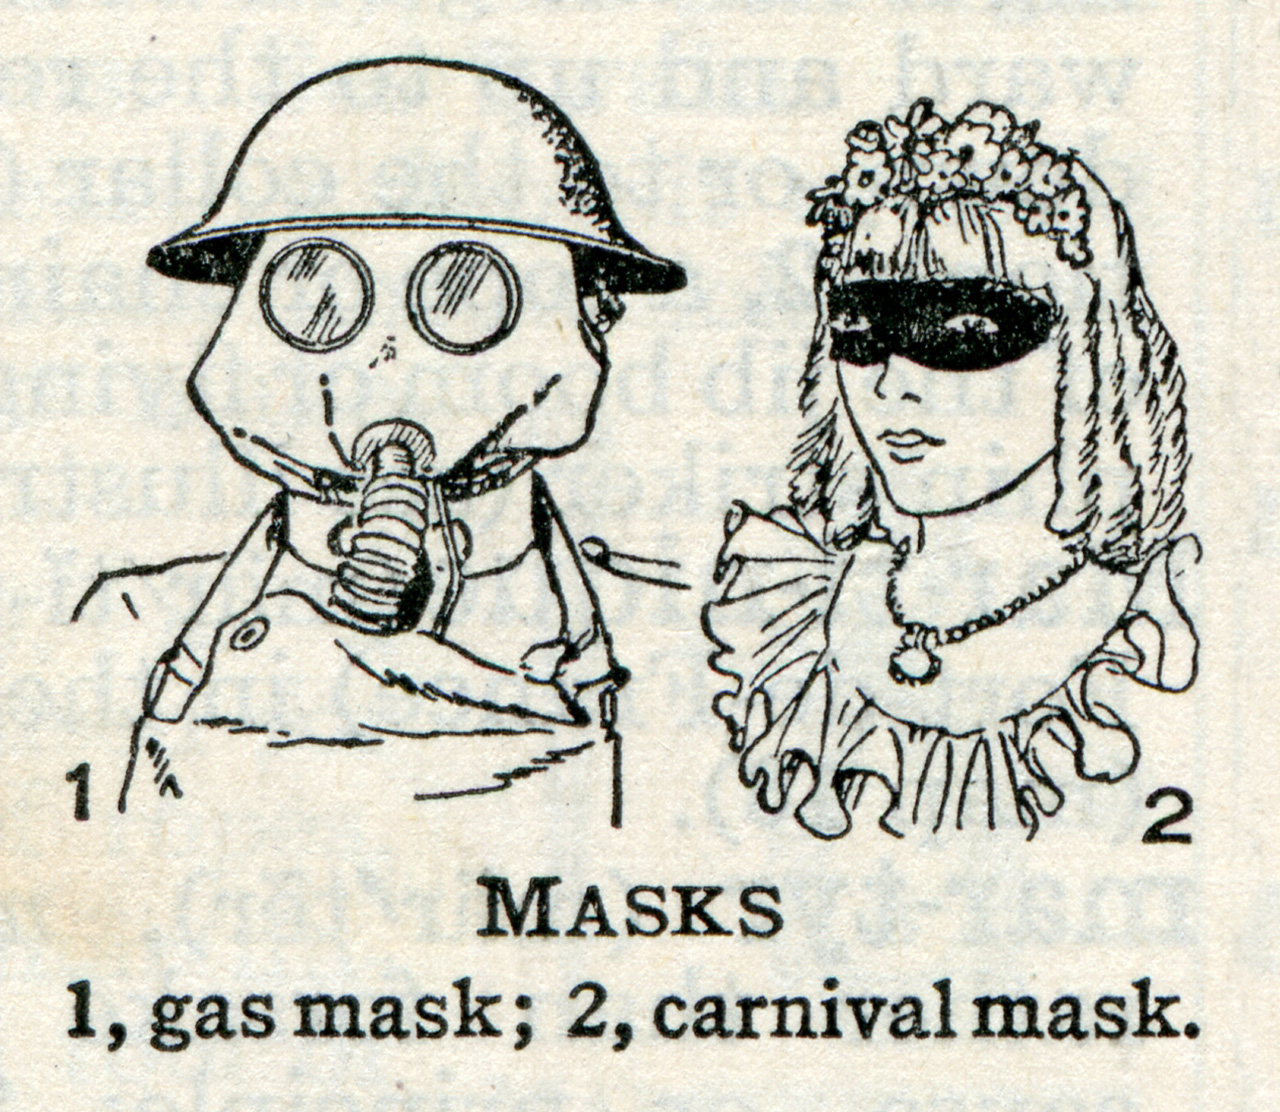 masks_gas_carnival.jpg